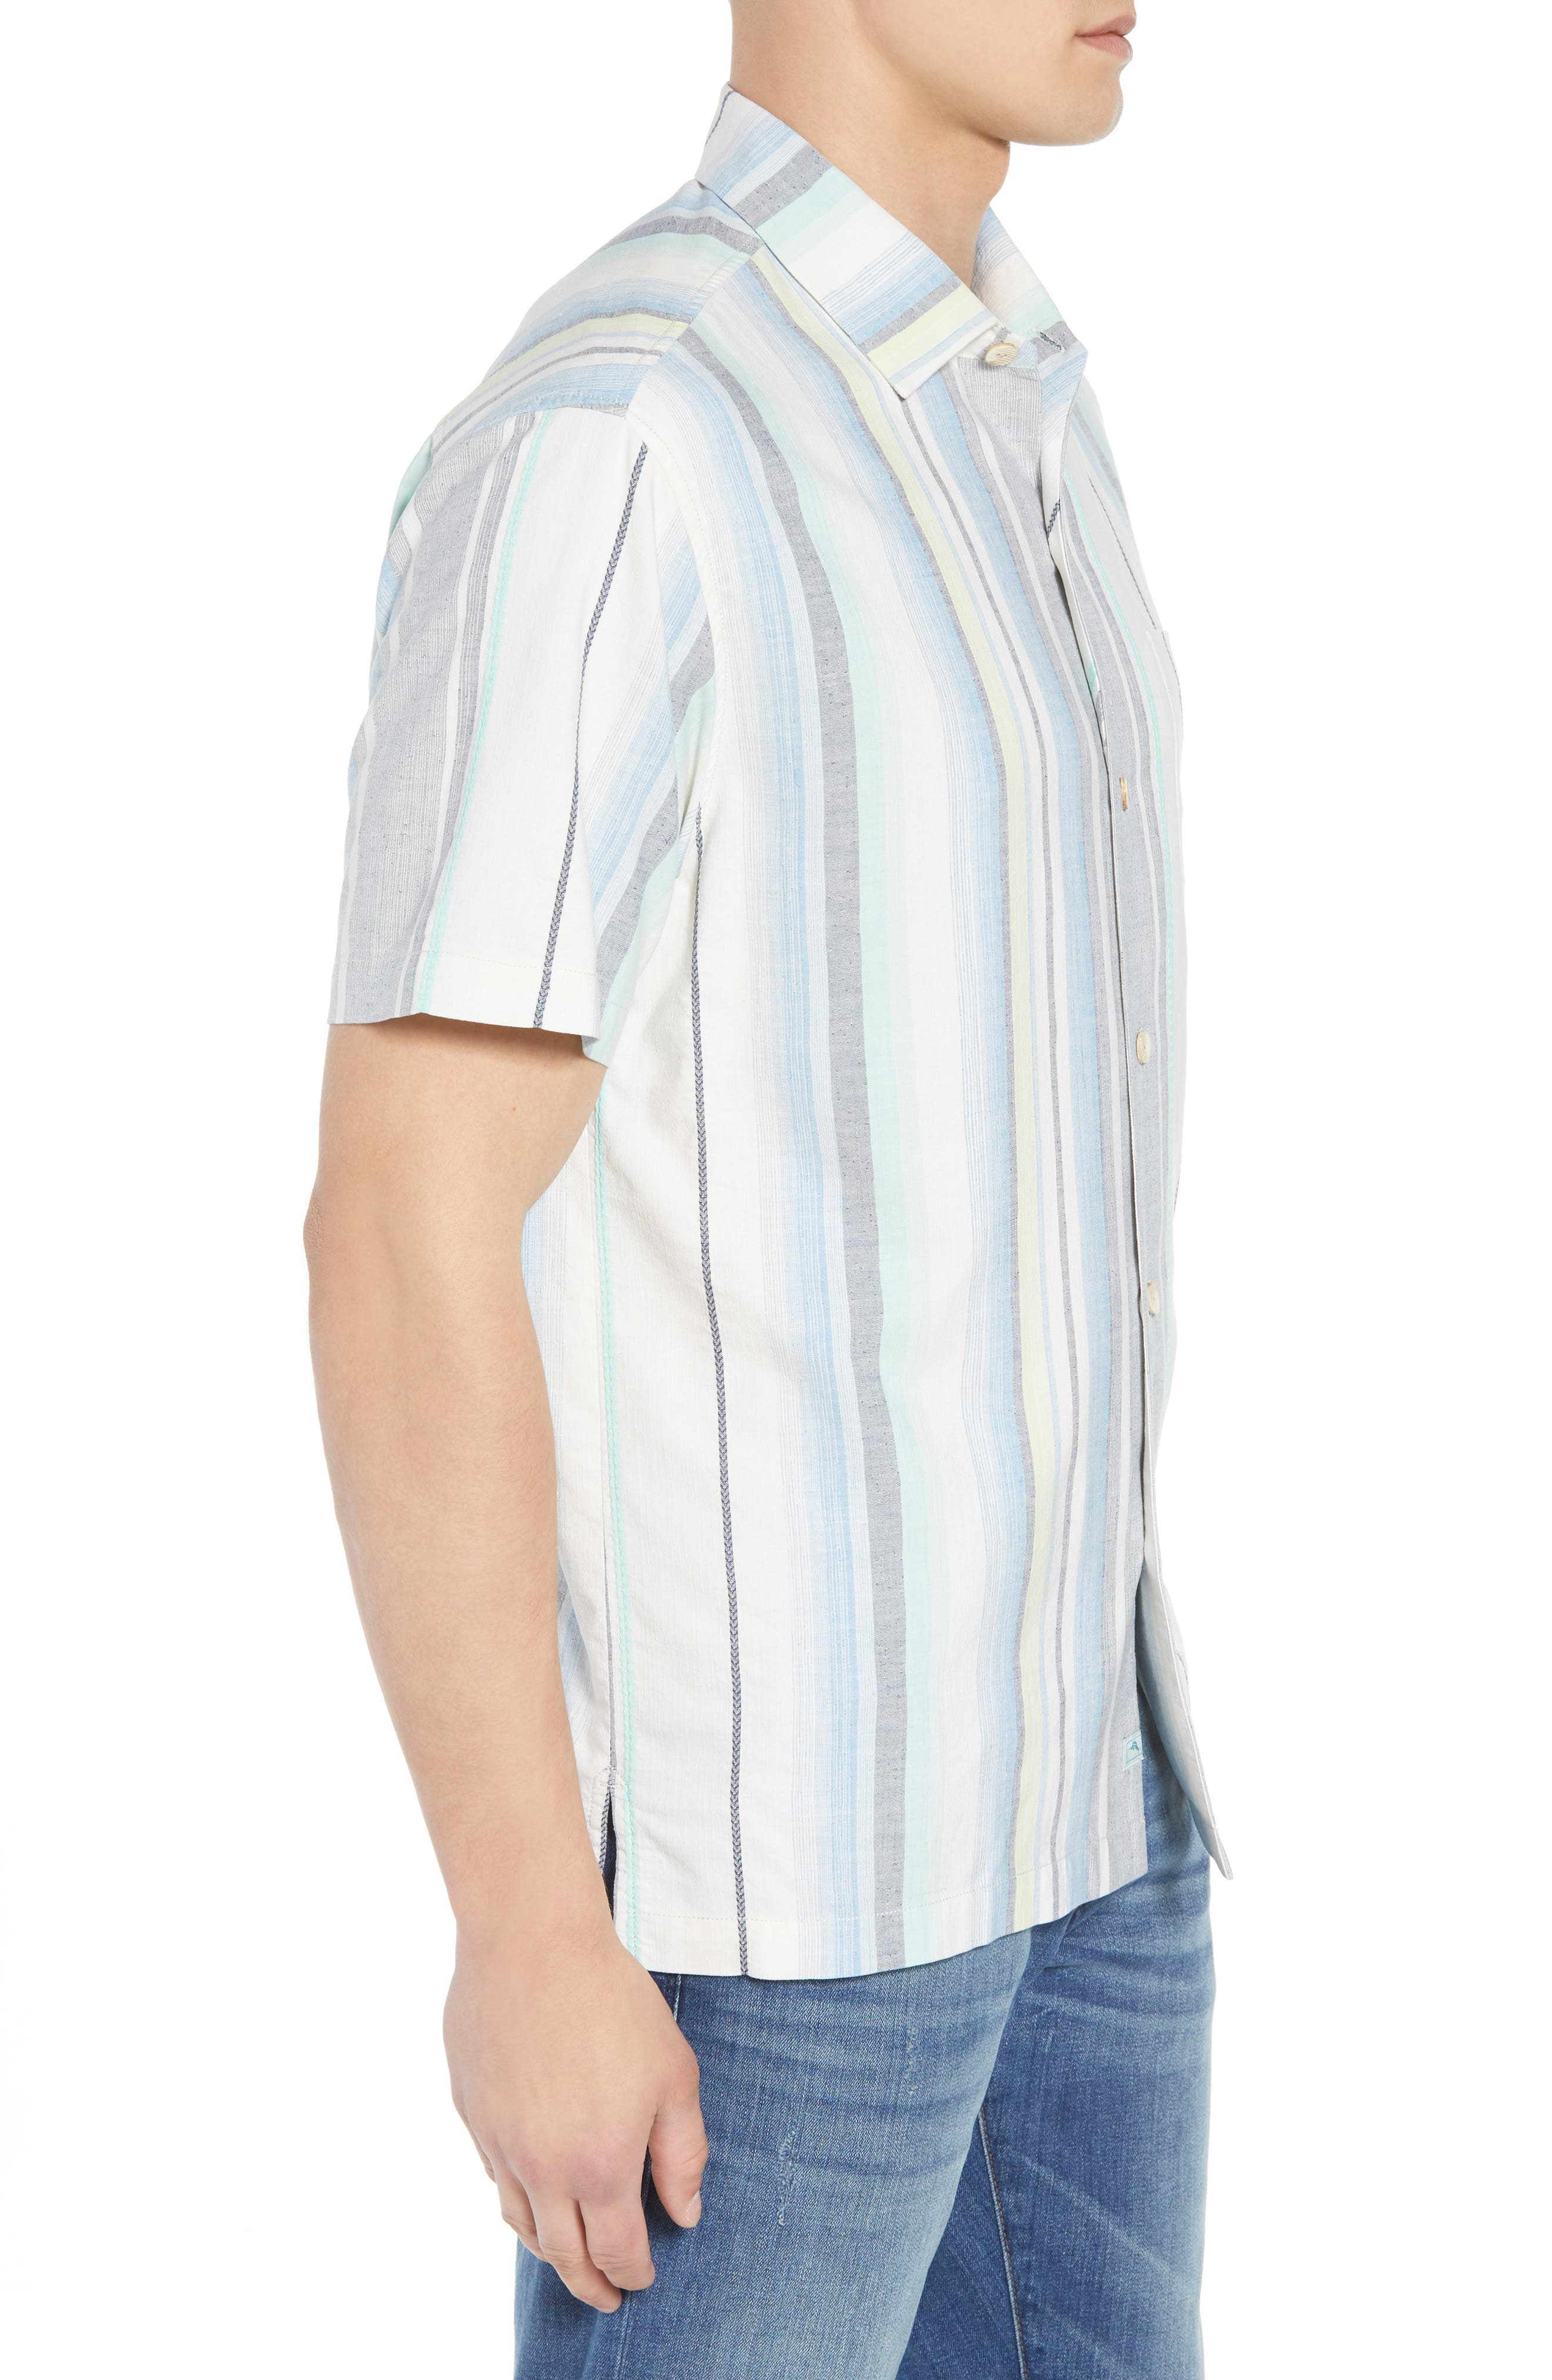 Posado Sands Silk Camp Shirt,                             Alternate thumbnail 3, color,                             BLUE ASTER